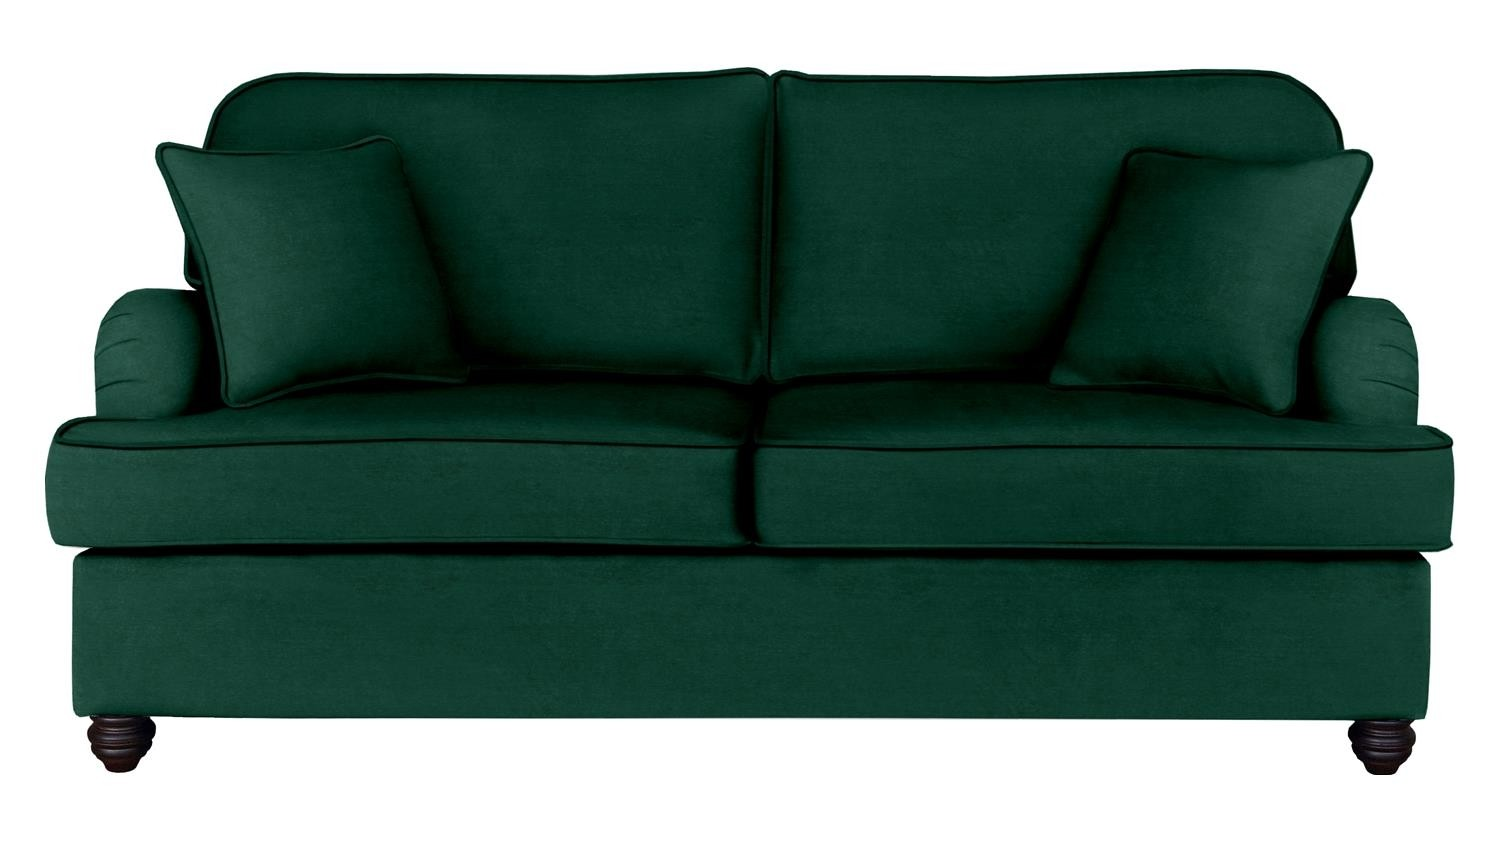 The Downton 3.5 Seater Sofa Bed